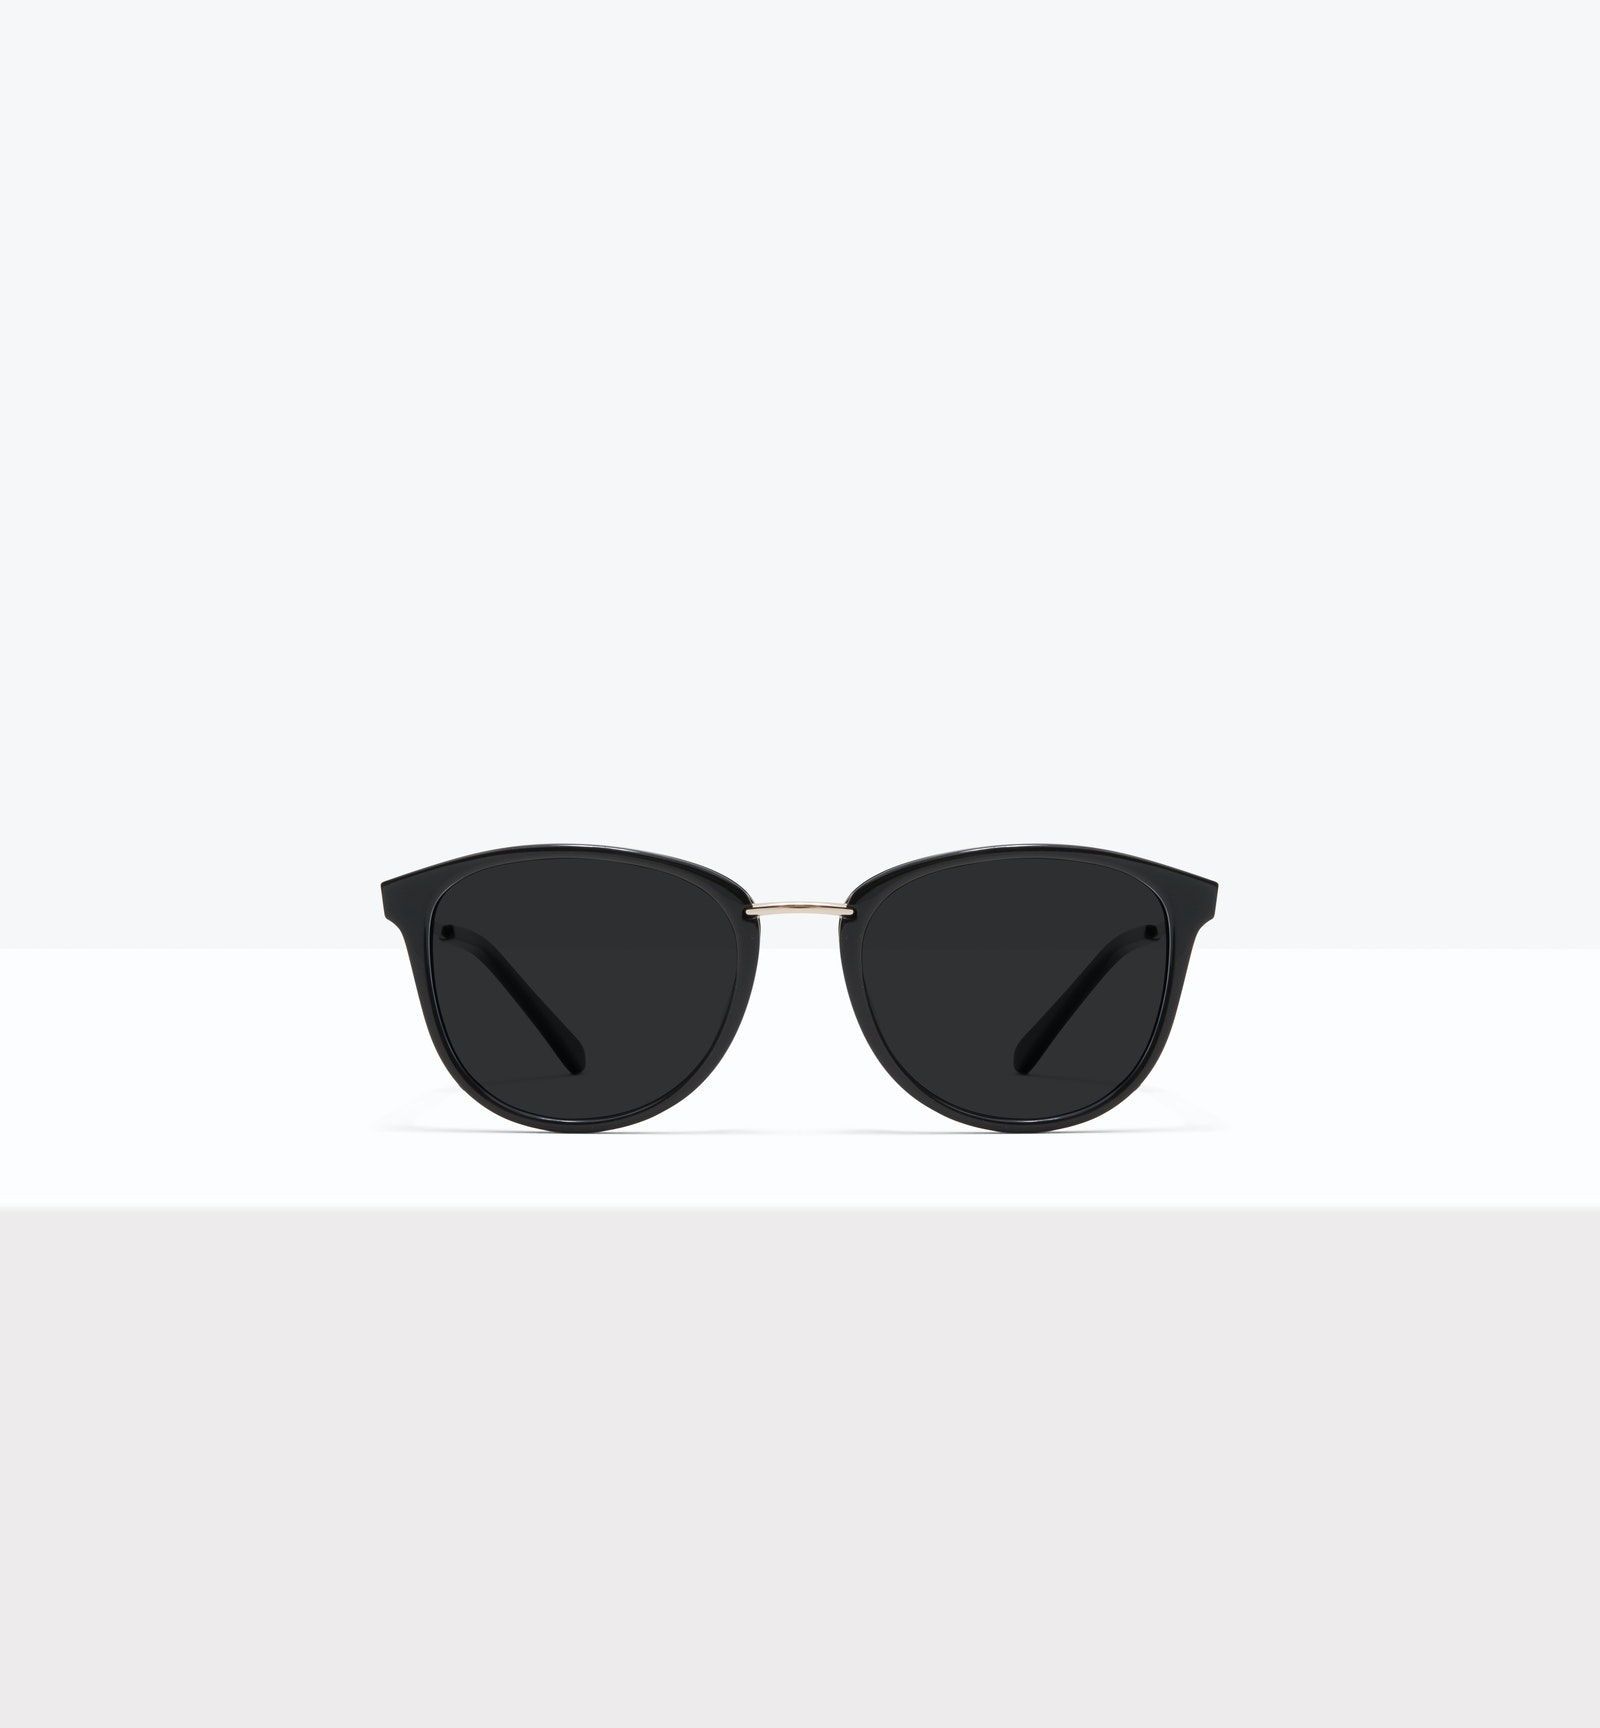 Affordable Fashion Glasses Square Round Sunglasses Women Bella XS Black